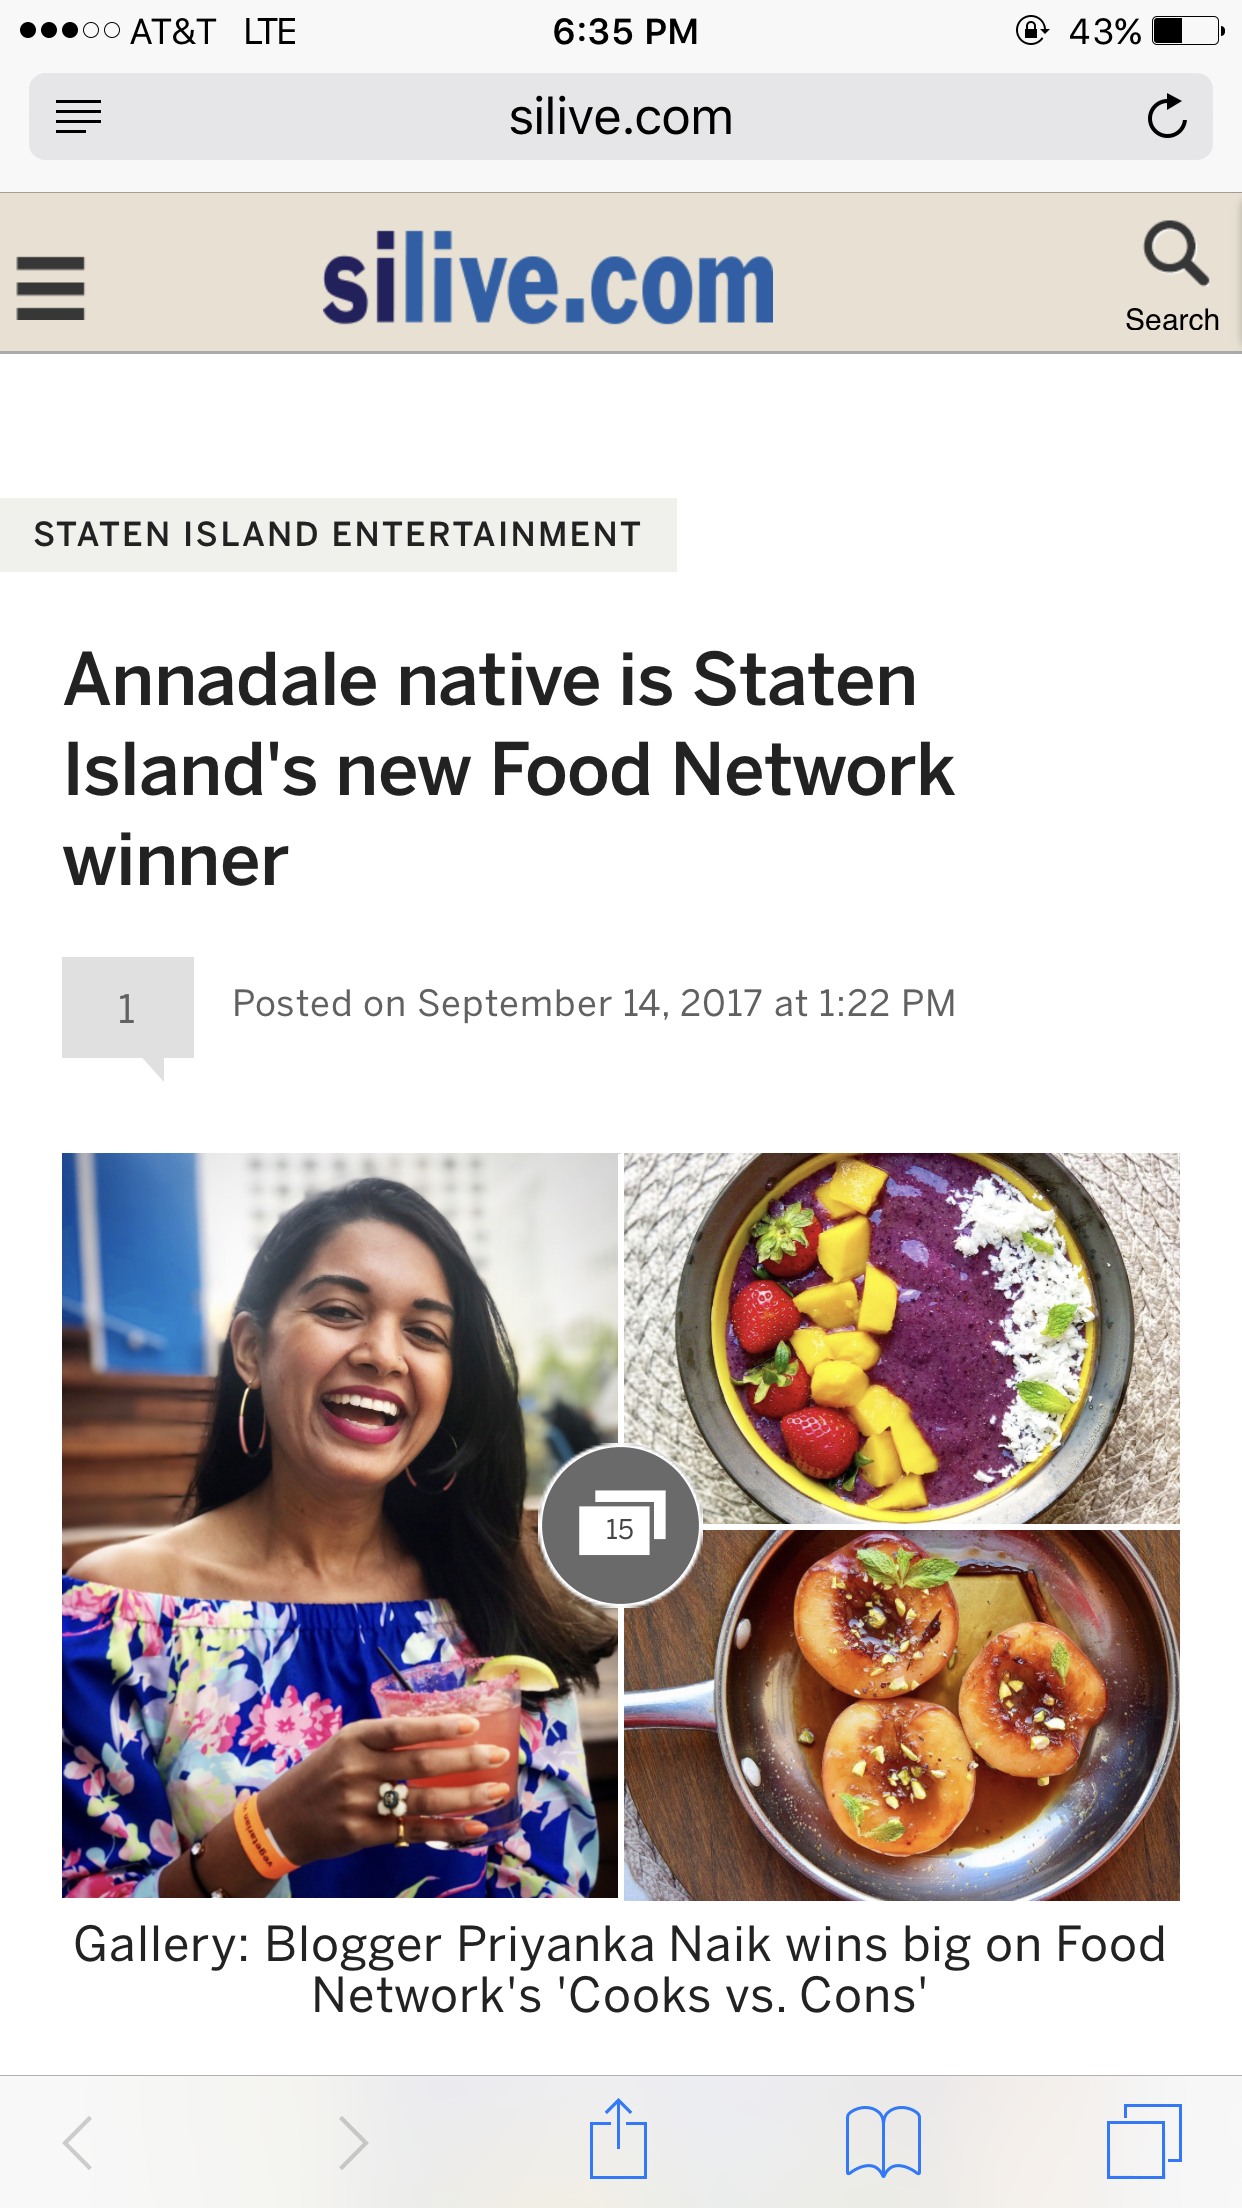 Food networks cooks vs cons winner chefpriyanka to hear from here i have only received love support from the community and was even featured on the staten island advance homepage with a lovely forumfinder Images